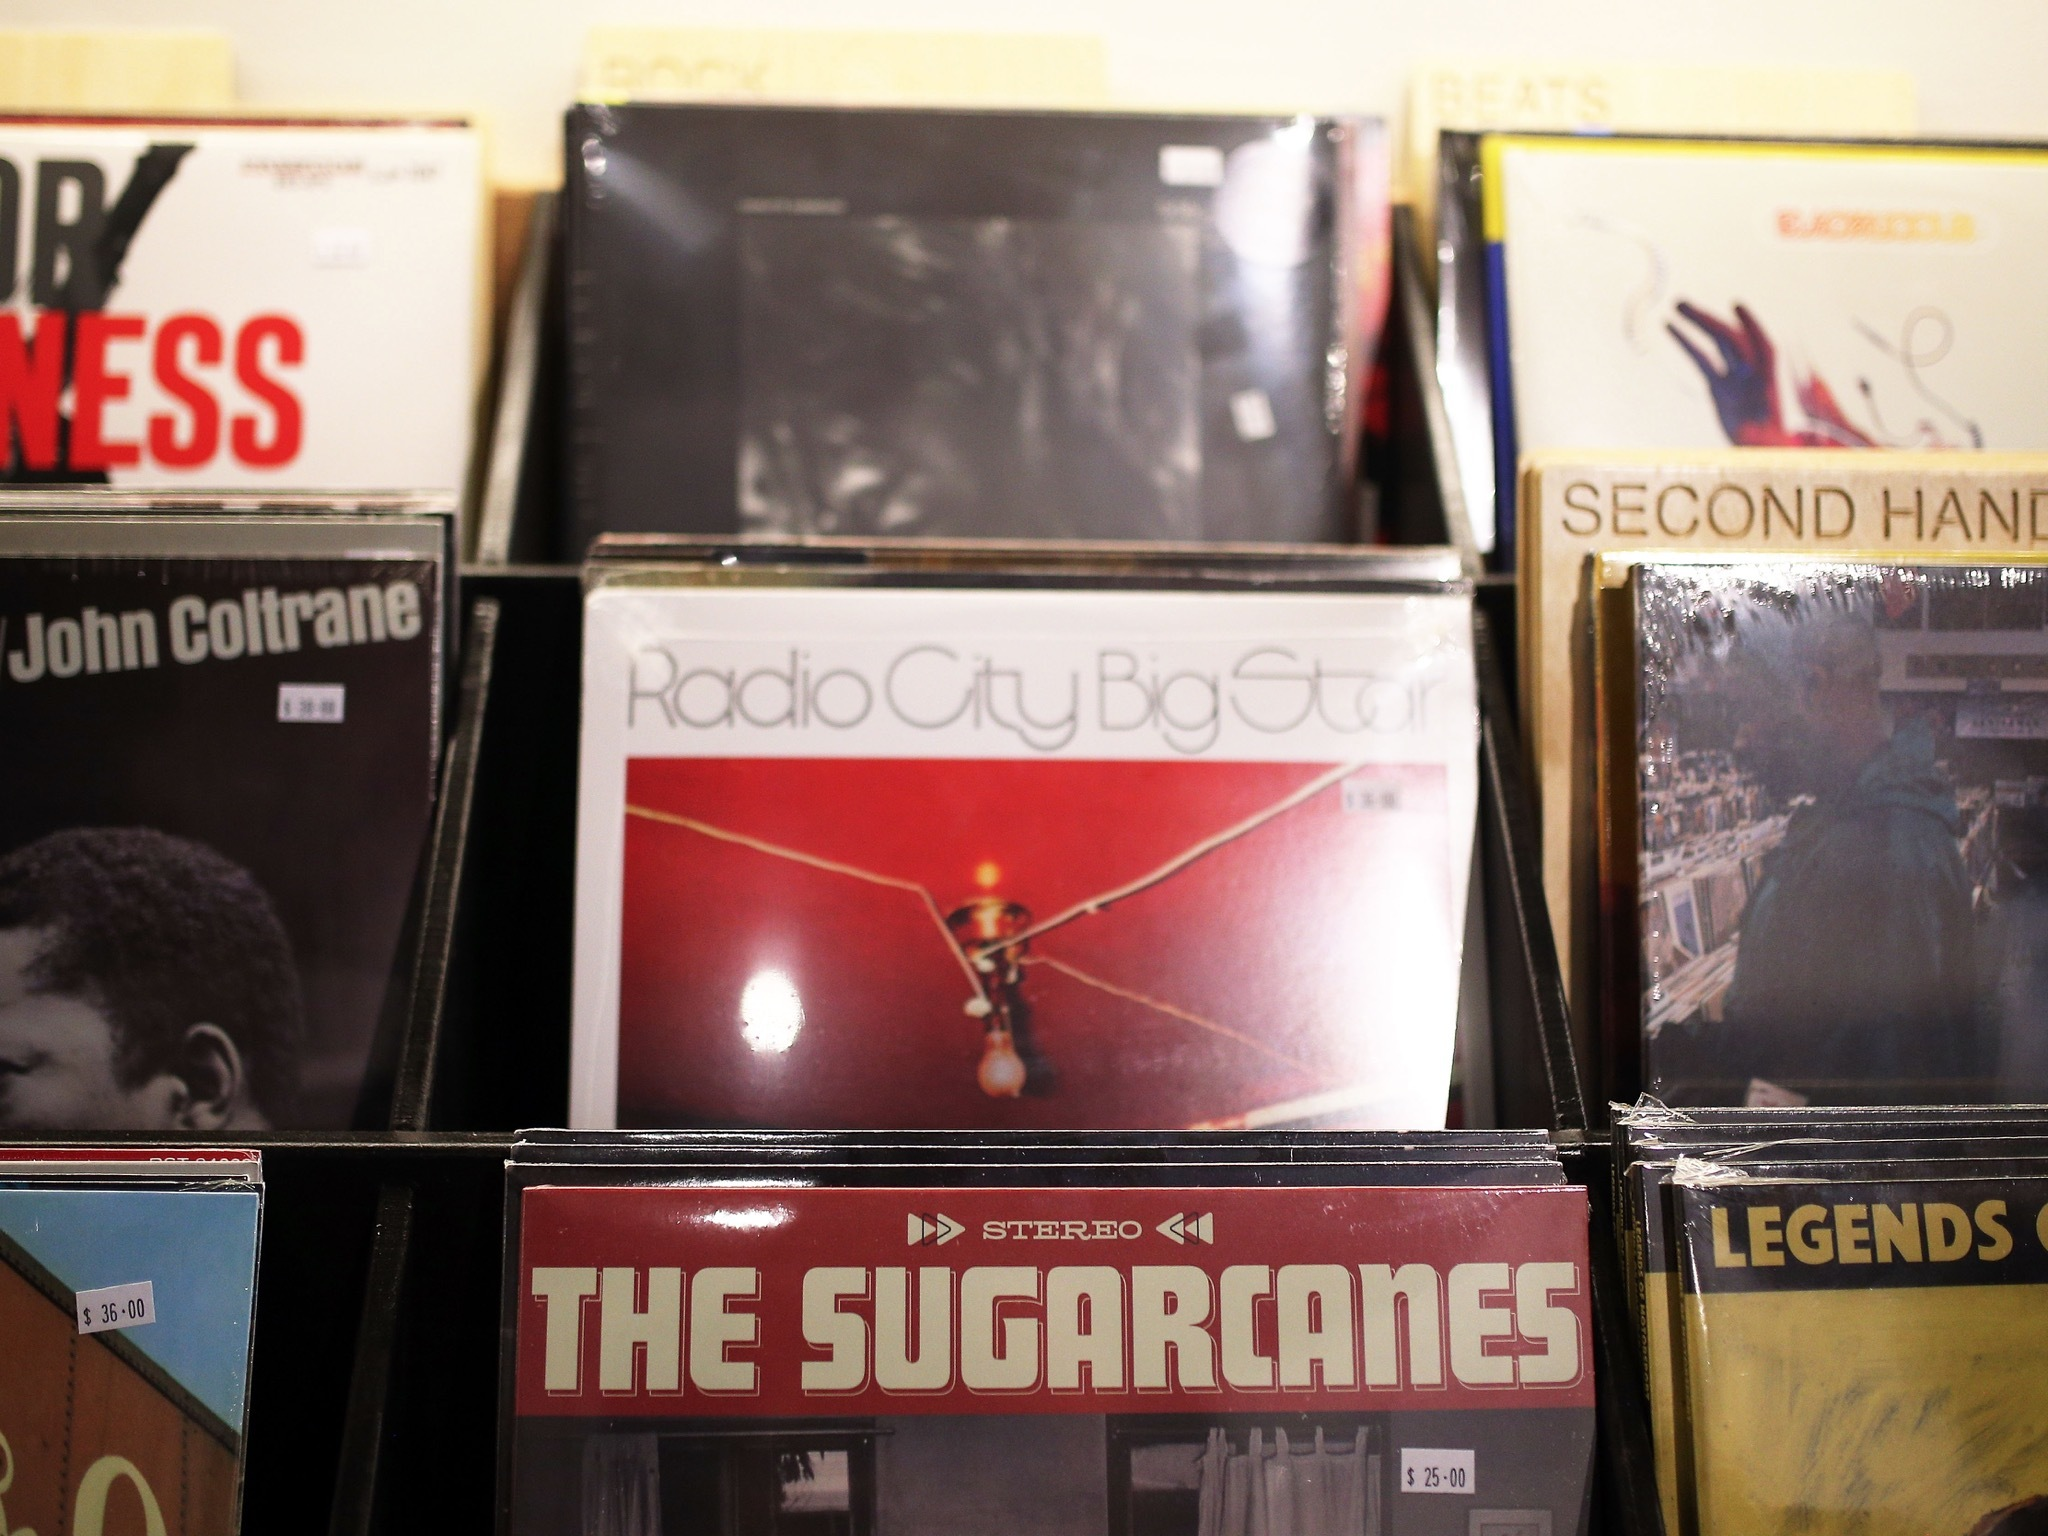 Go record shopping and find 'your song'